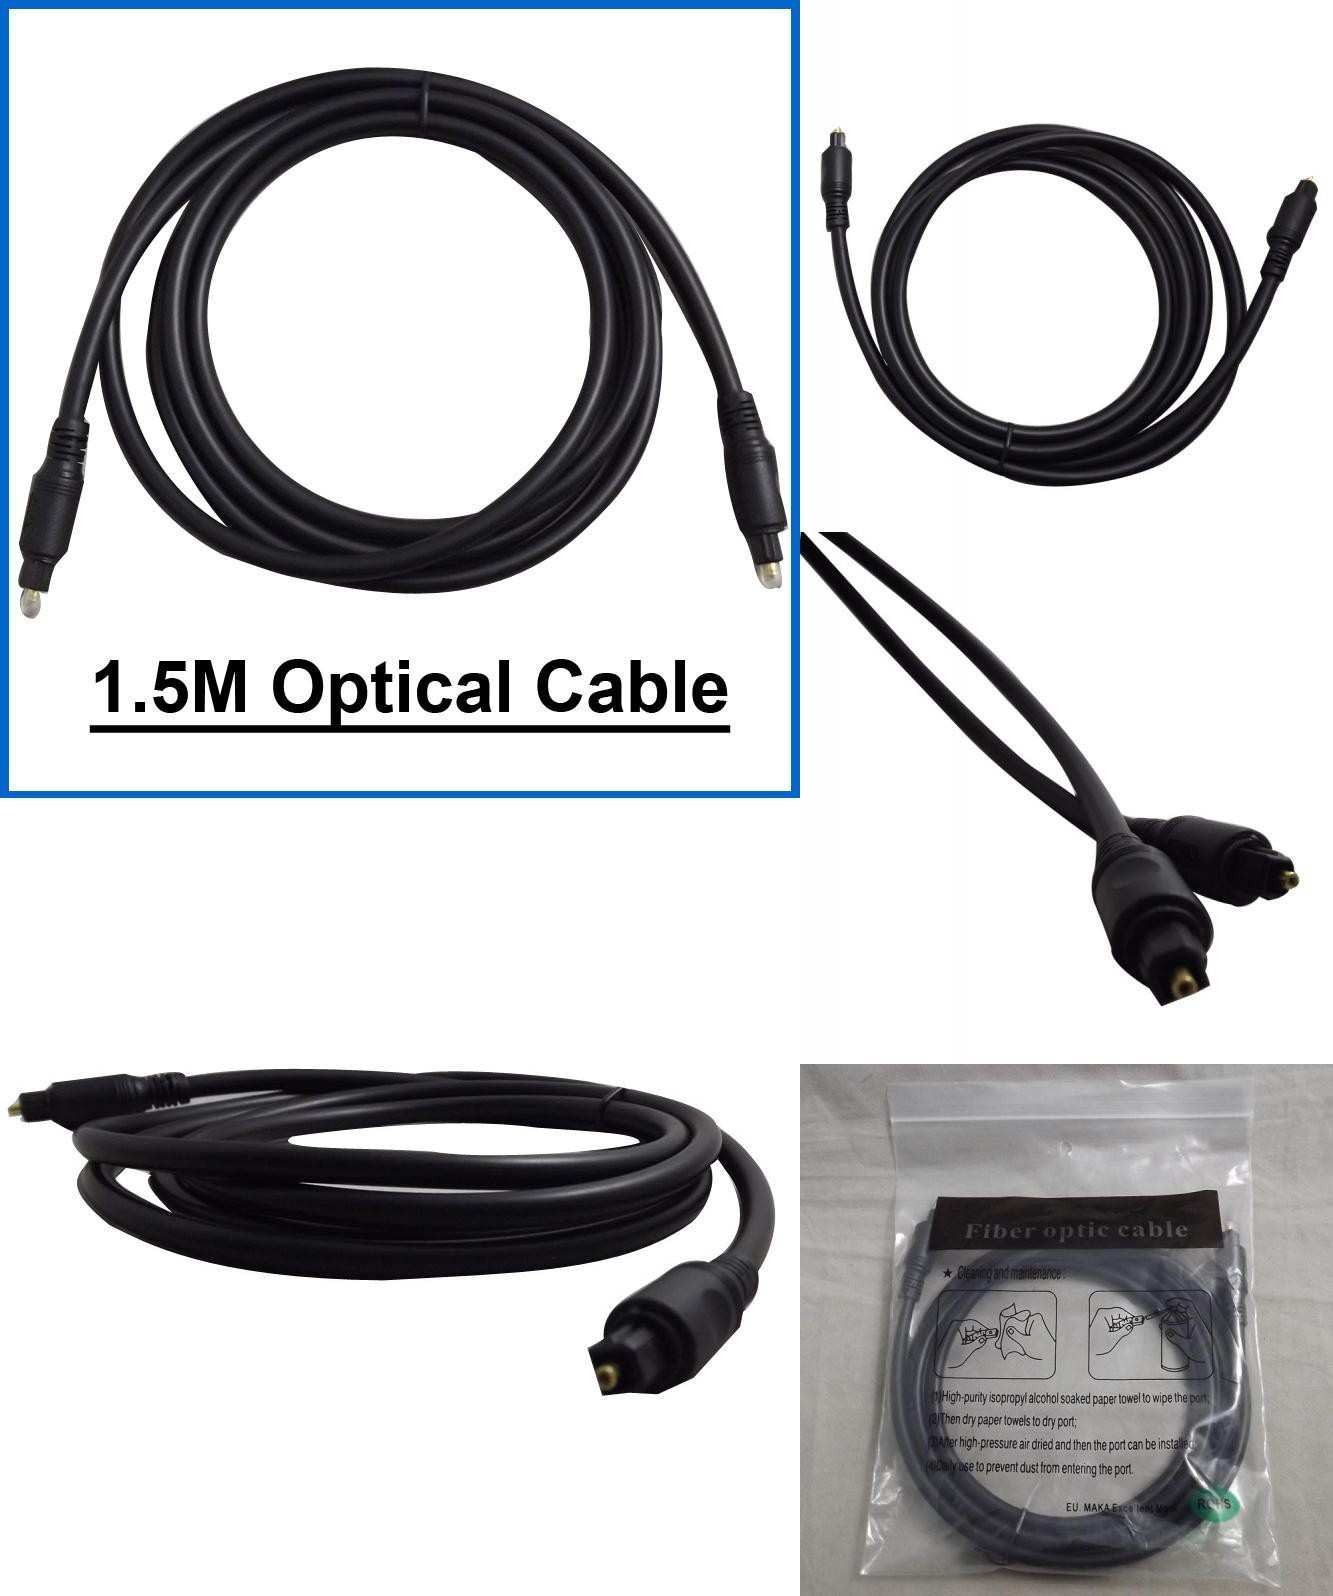 Wiring Diagram for A Cat5 Cable Best Wiring Diagram for Cat5 Cable Inspirational Visit to Buy